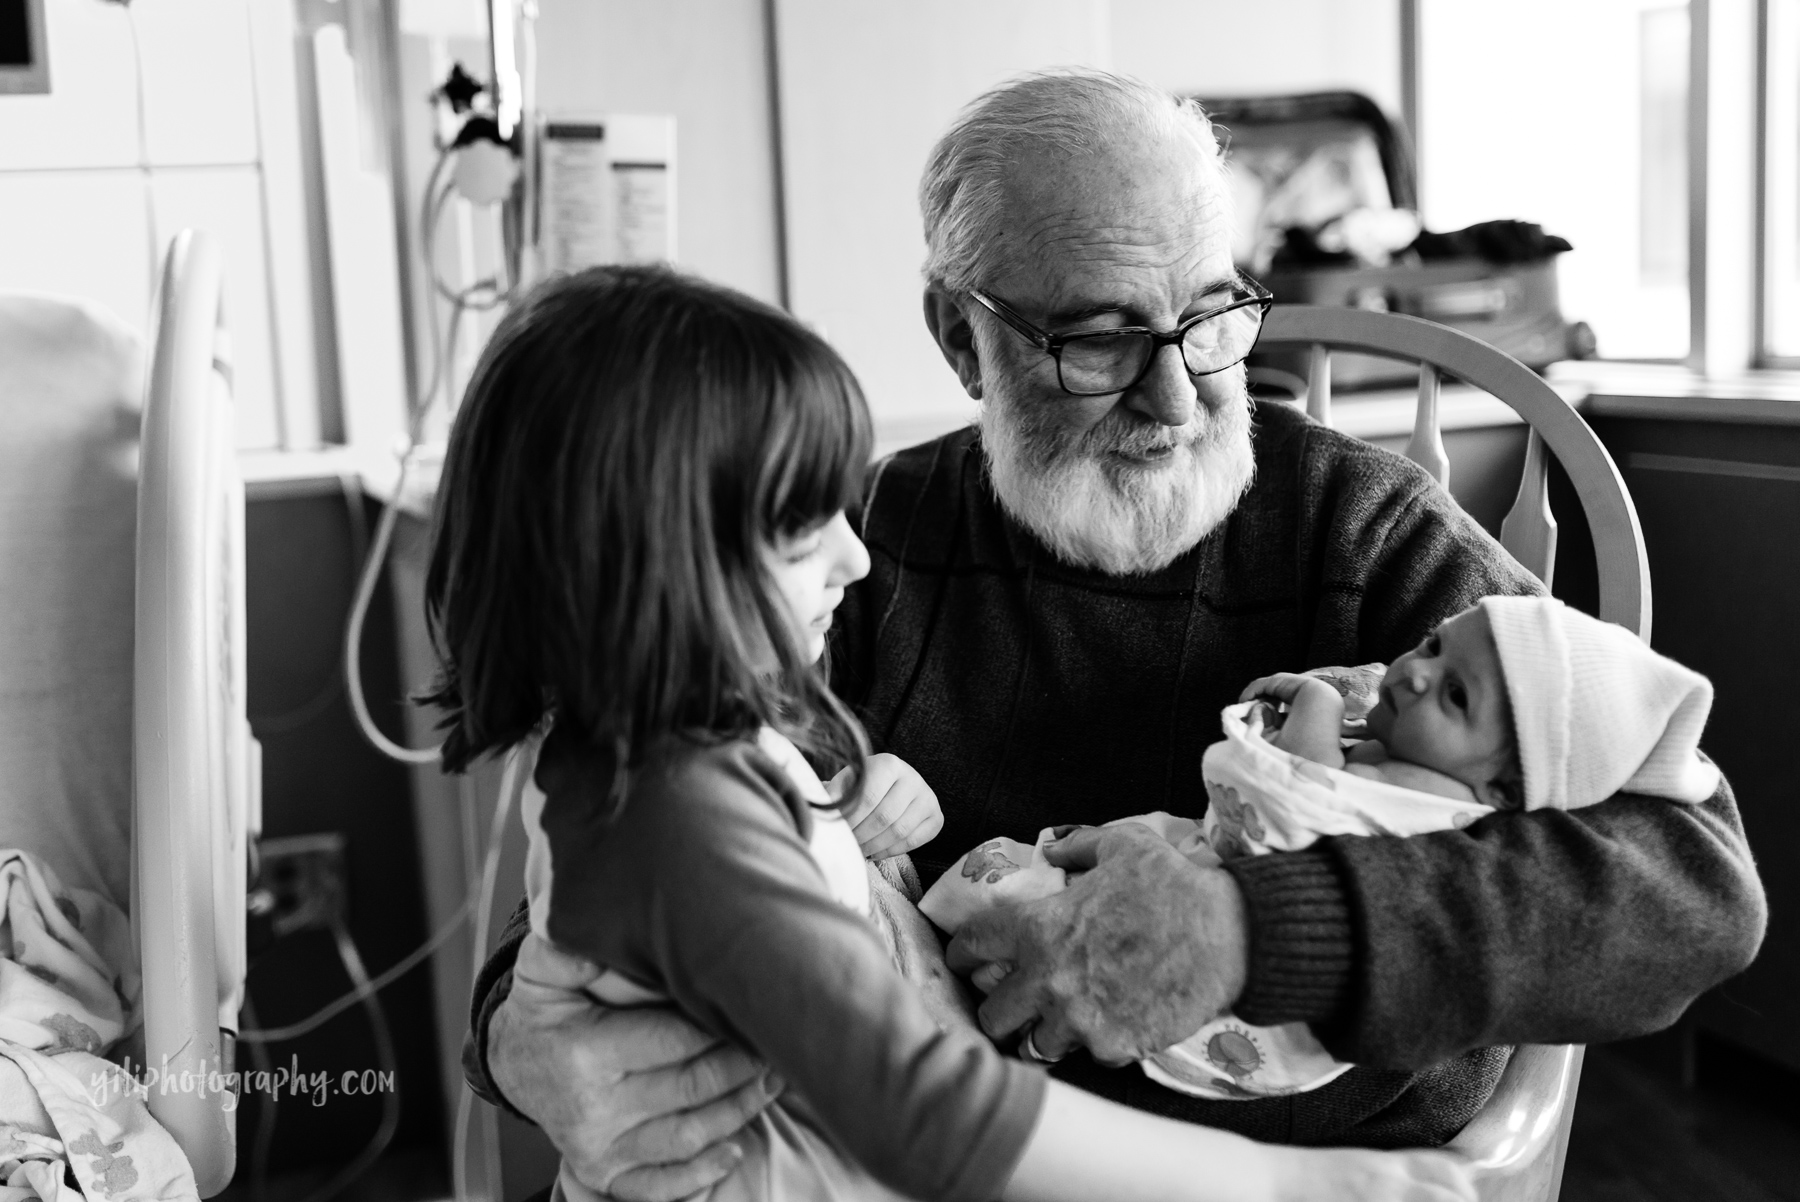 grandfather holds newborn baby in hospital rocker while hugging older granddaughter